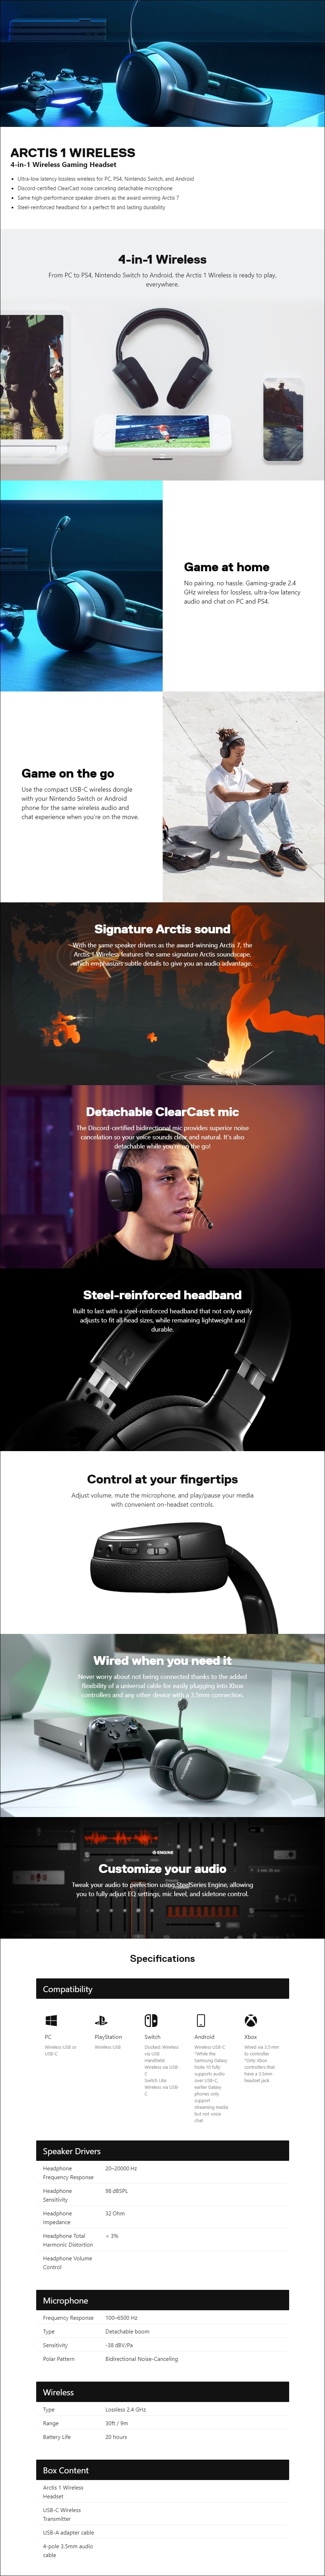 SteelSeries Arctis 1 Wireless Gaming Headset - Overview 1